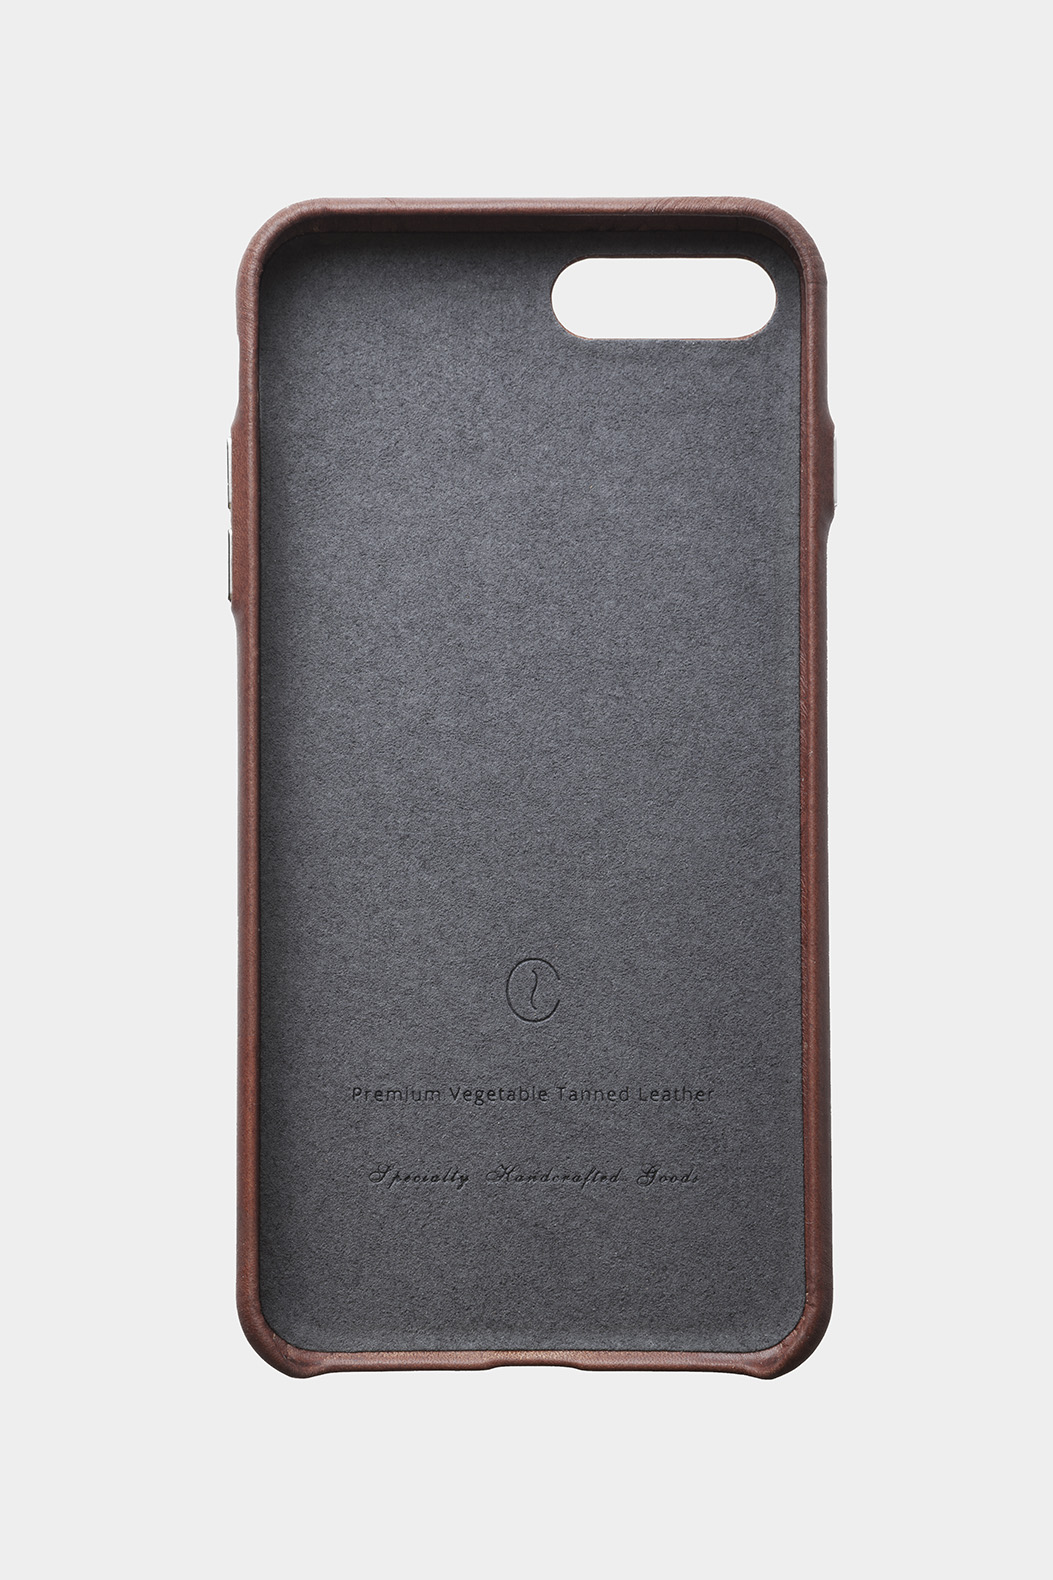 iphone 7 plus leather case black